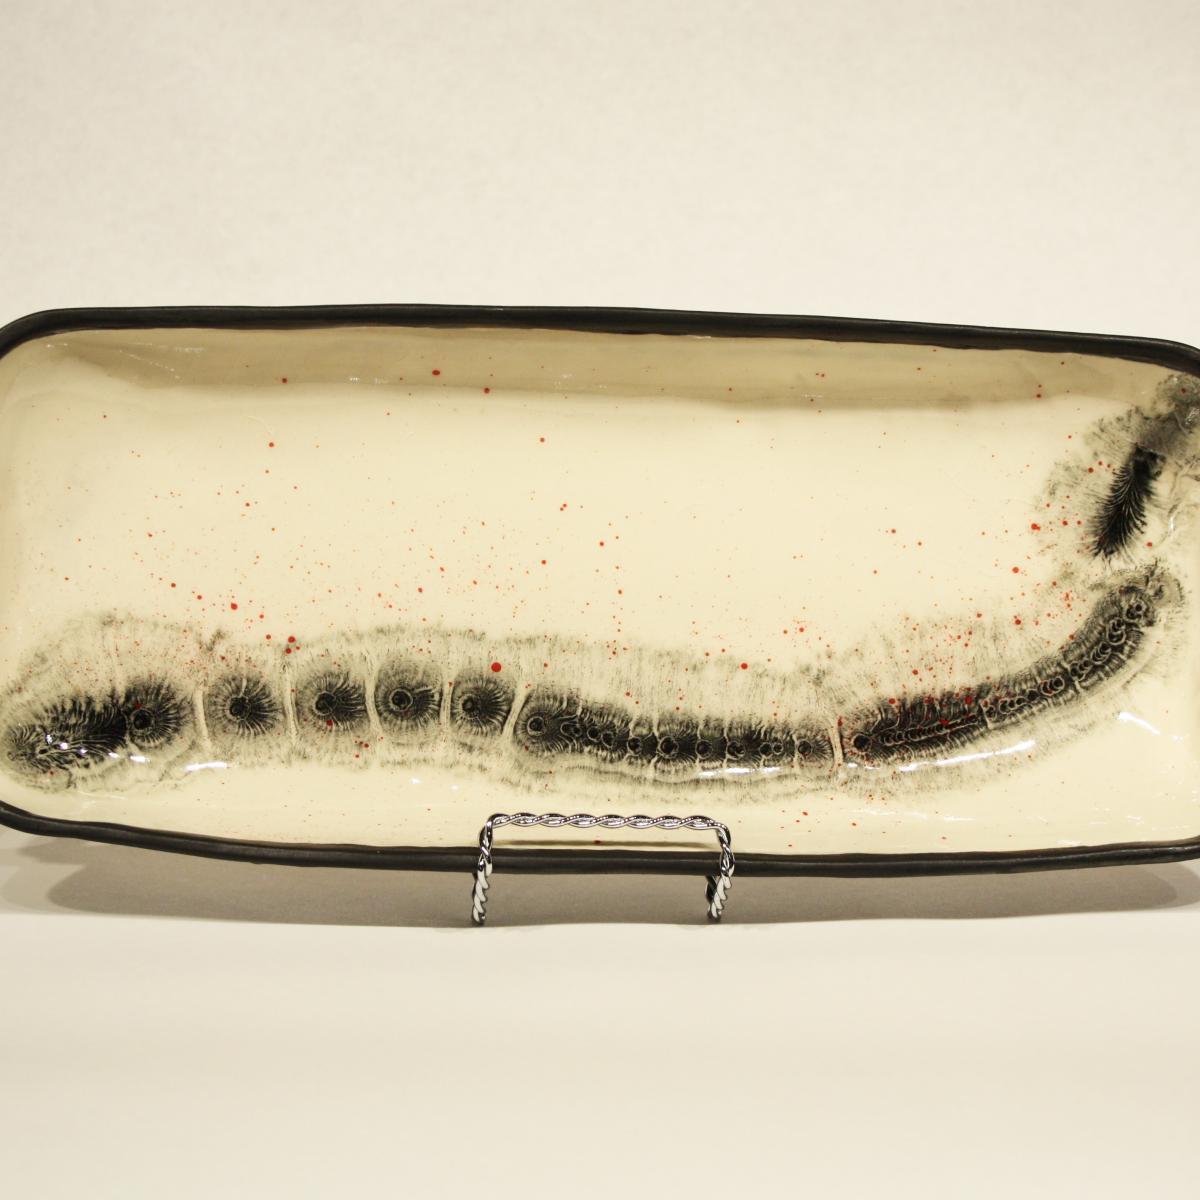 Long rectangular serving platter with handles with black snakelike pattern on white.